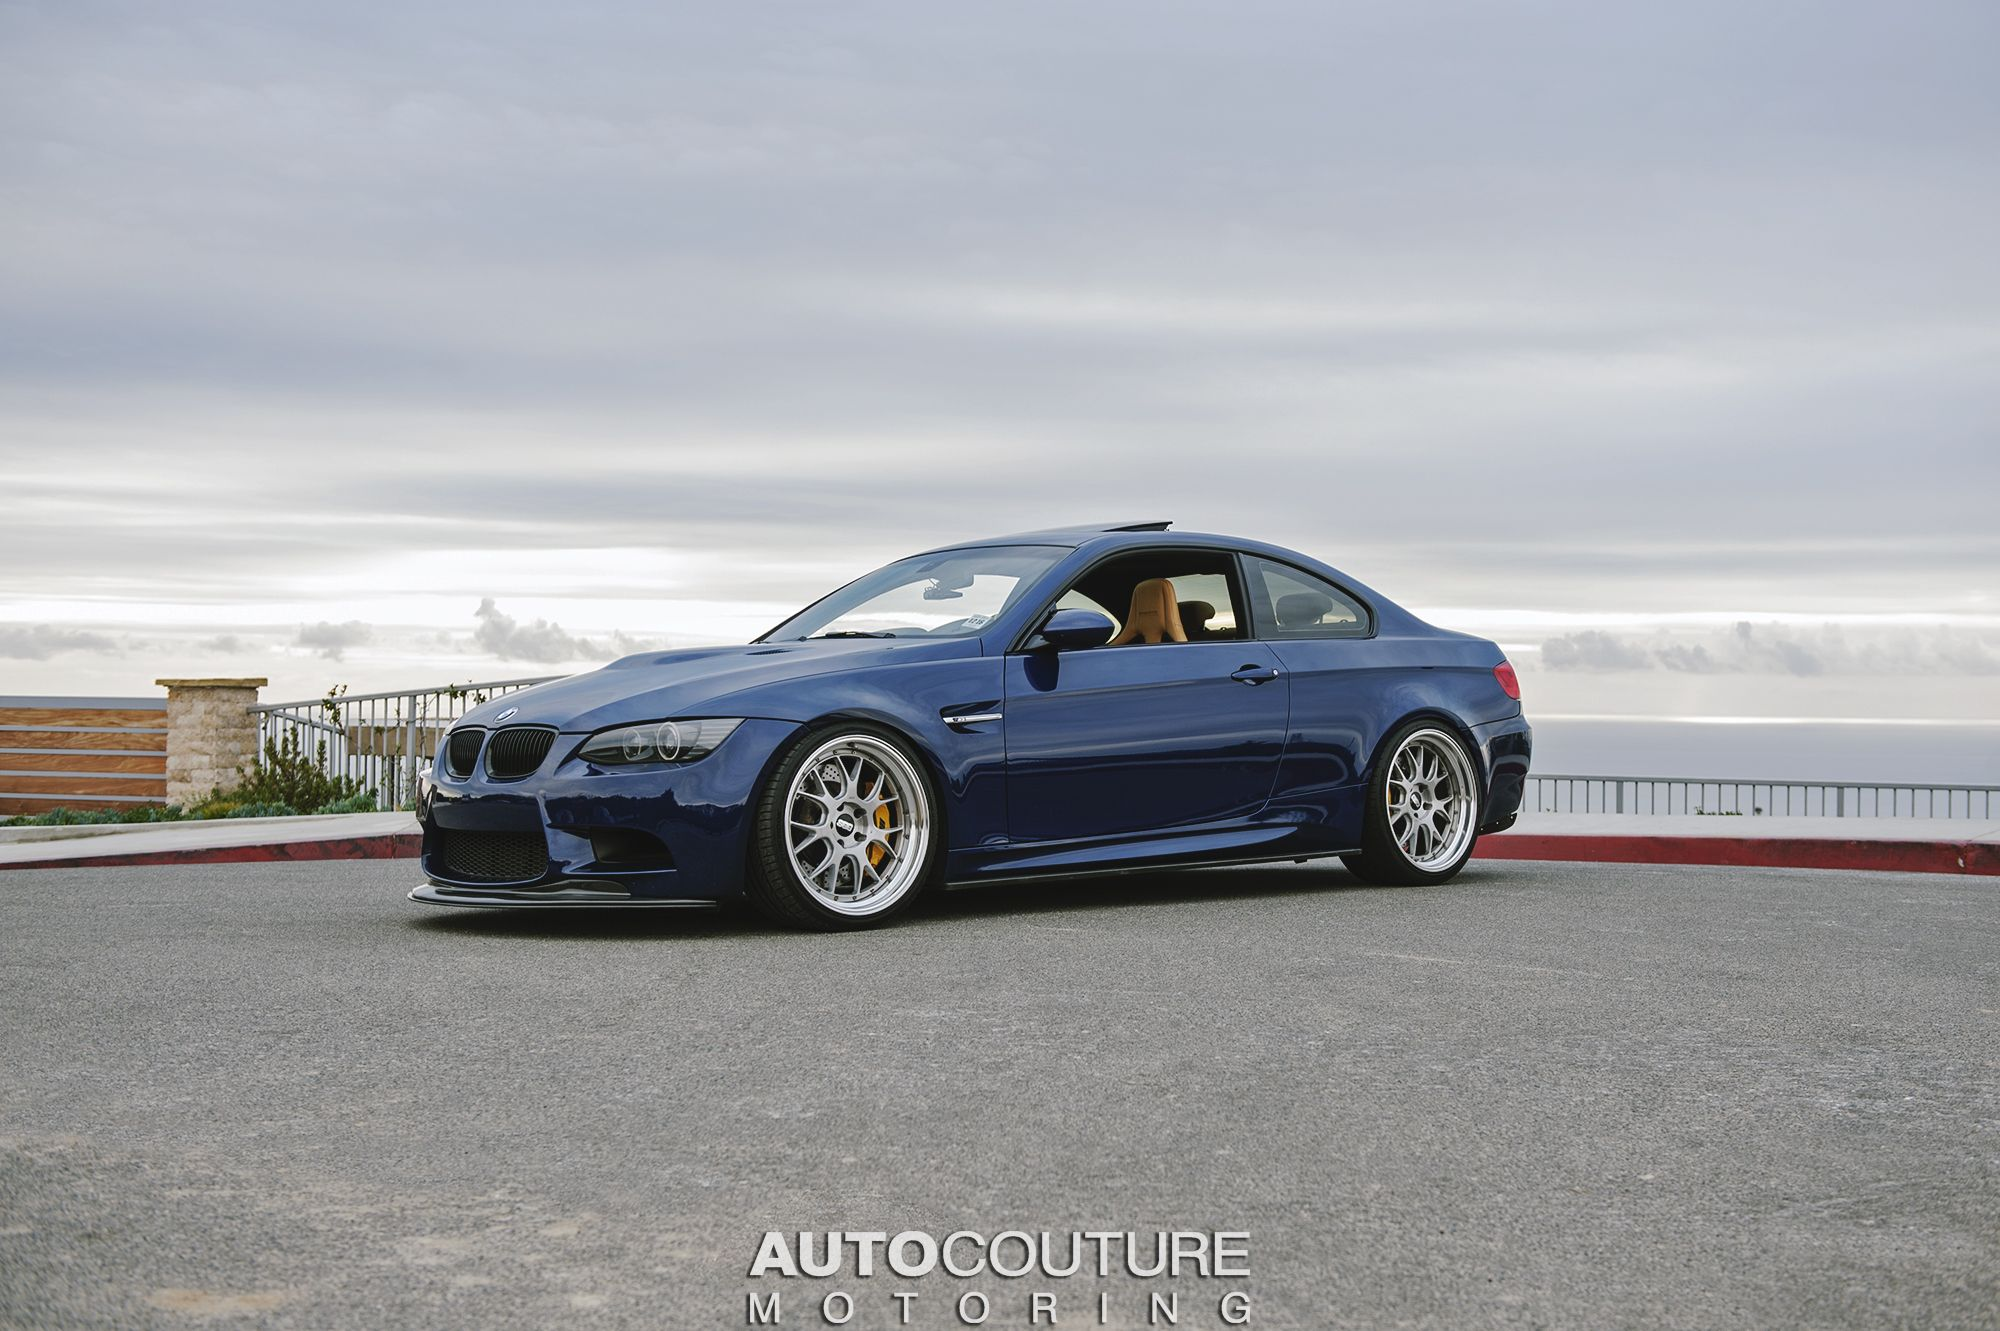 Bmw E92 M3 Coupe Dark Blue With Images Bmw Coupe Alpine